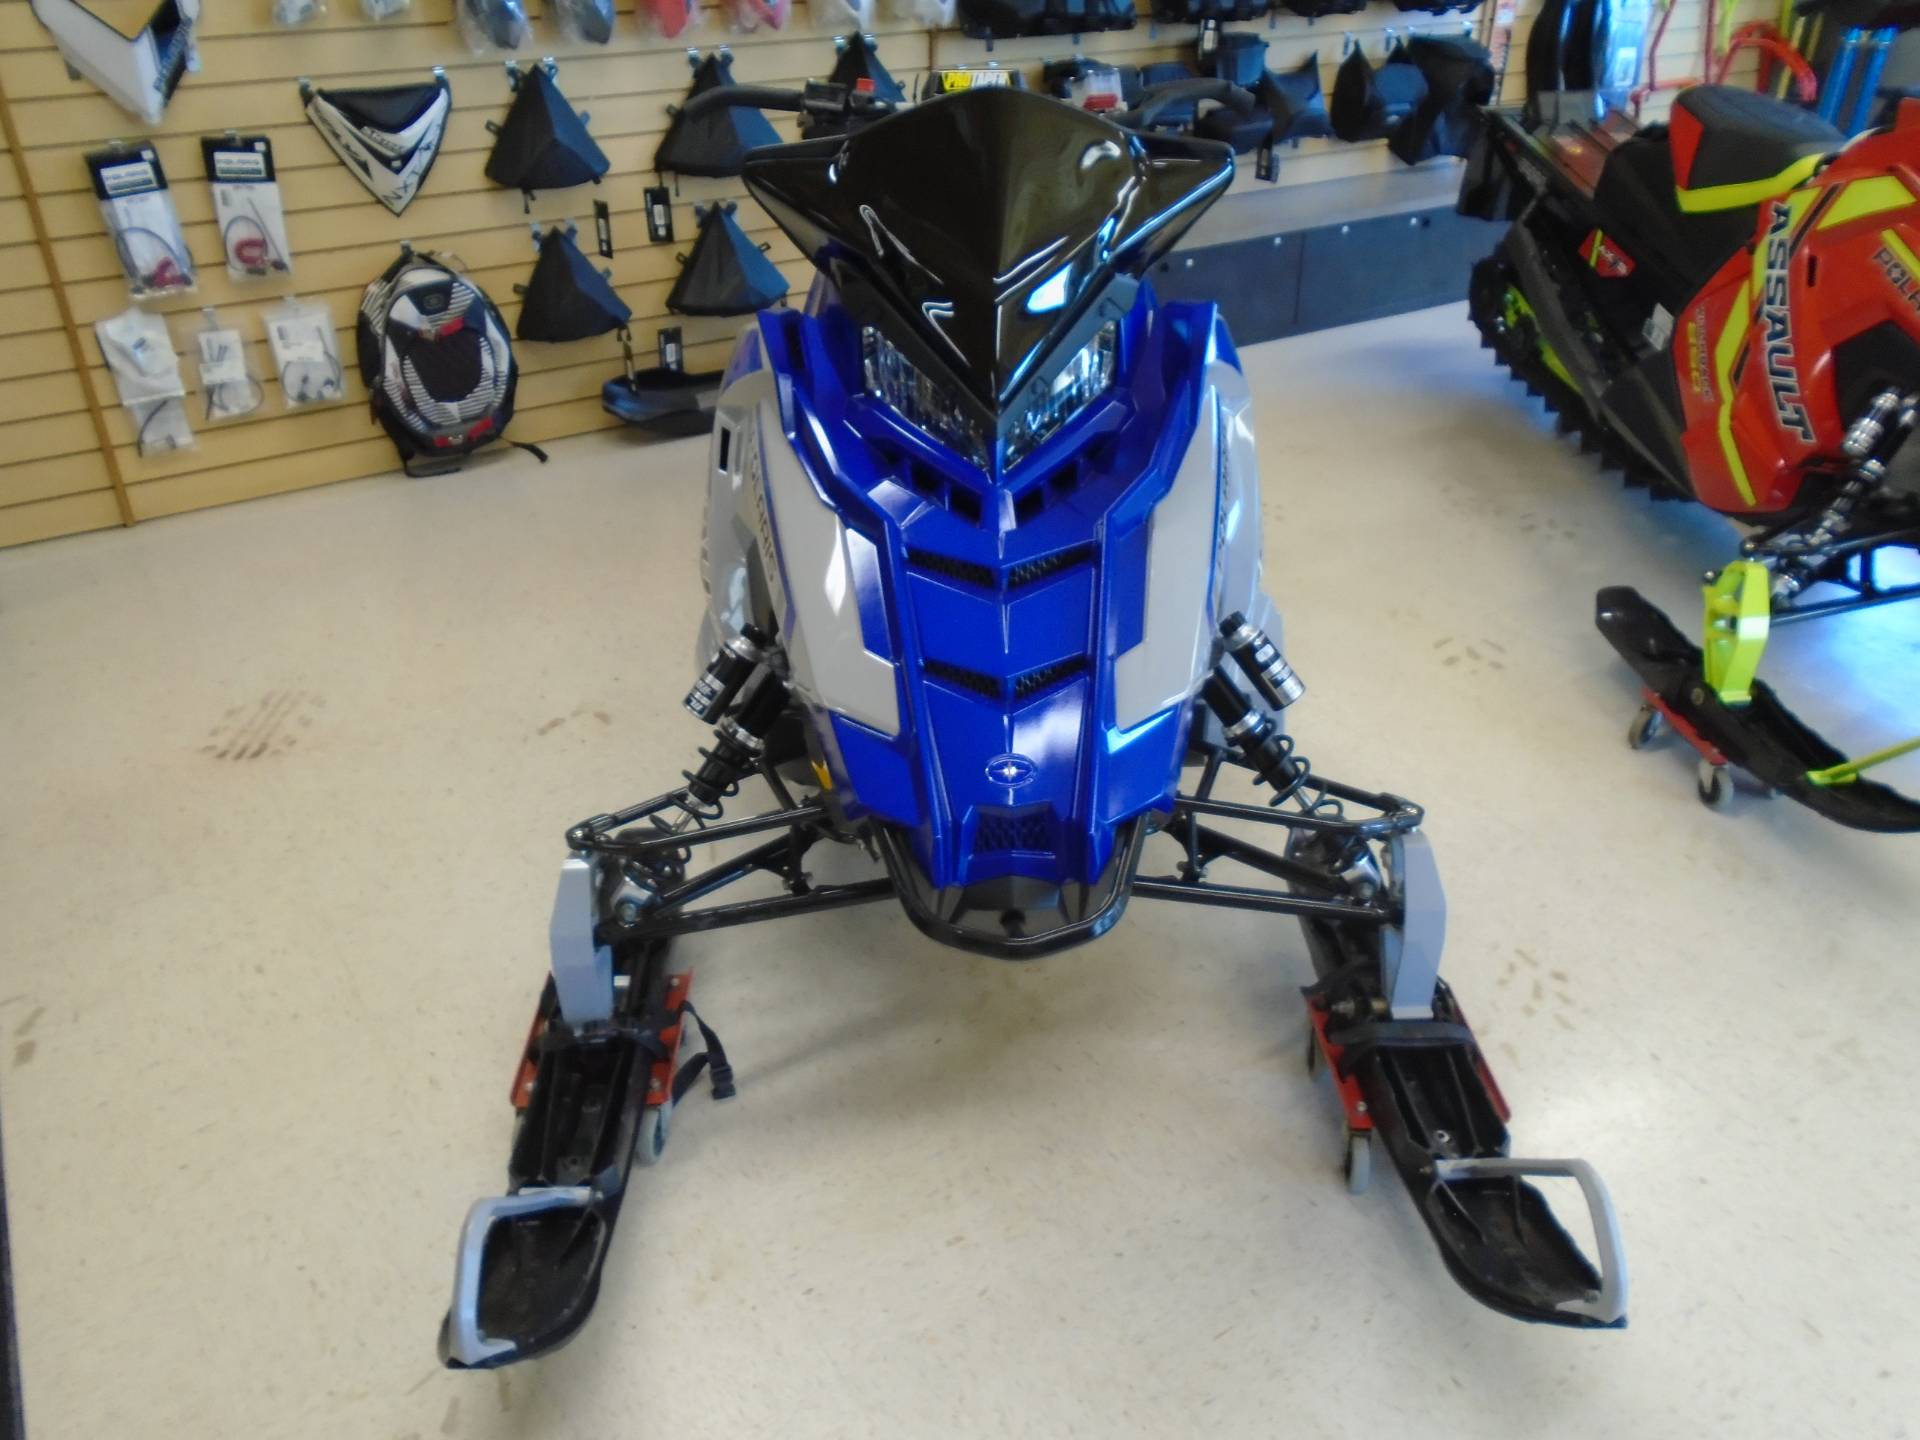 2021 Polaris 850 Switchback Assault 144 Factory Choice in Lake Mills, Iowa - Photo 2